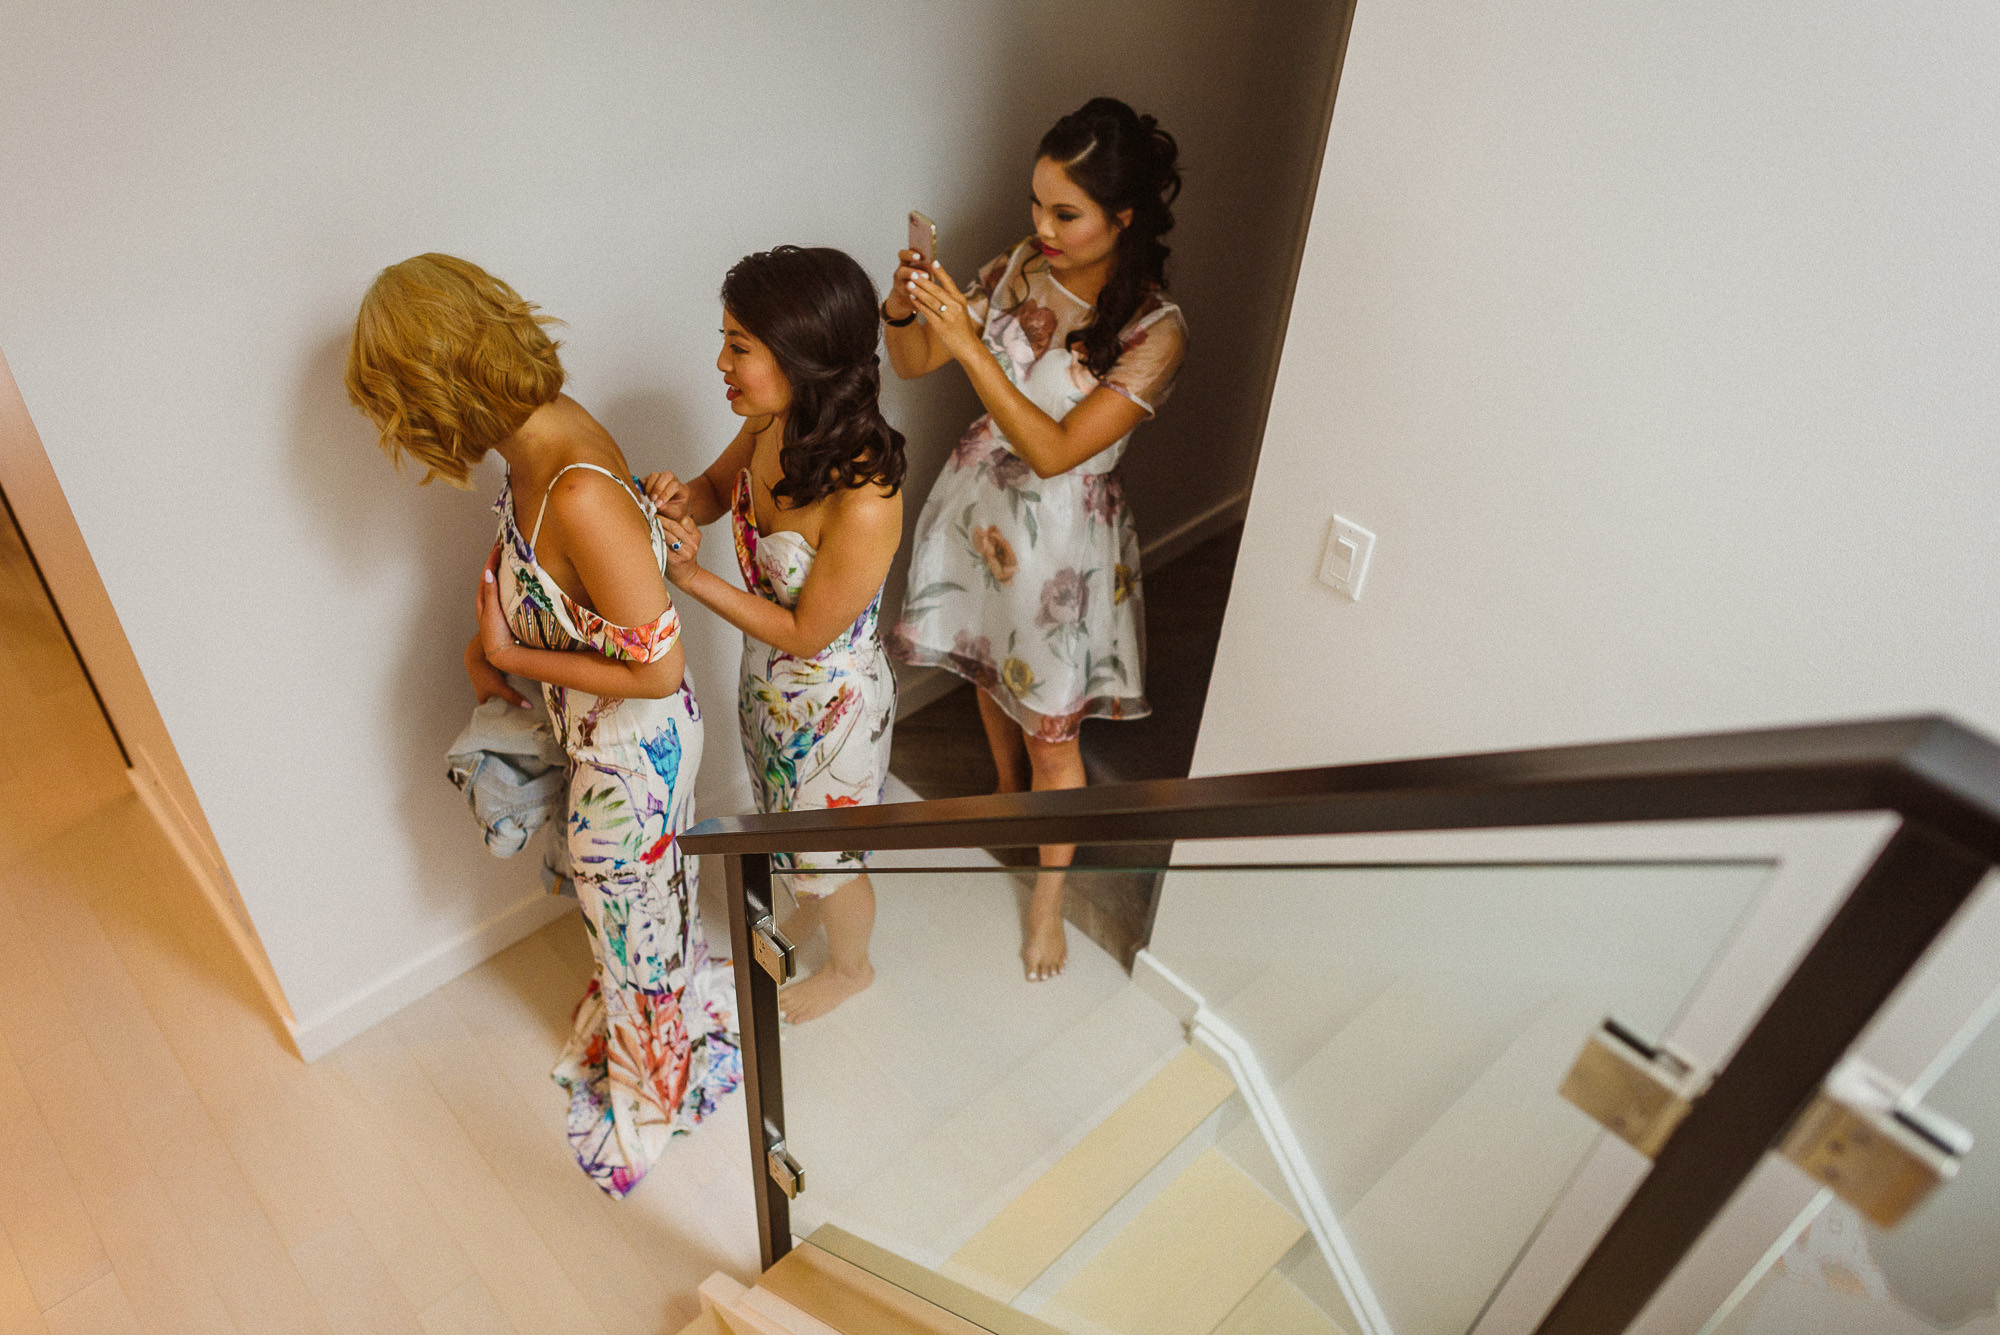 bridesmaids helping each other get dressed